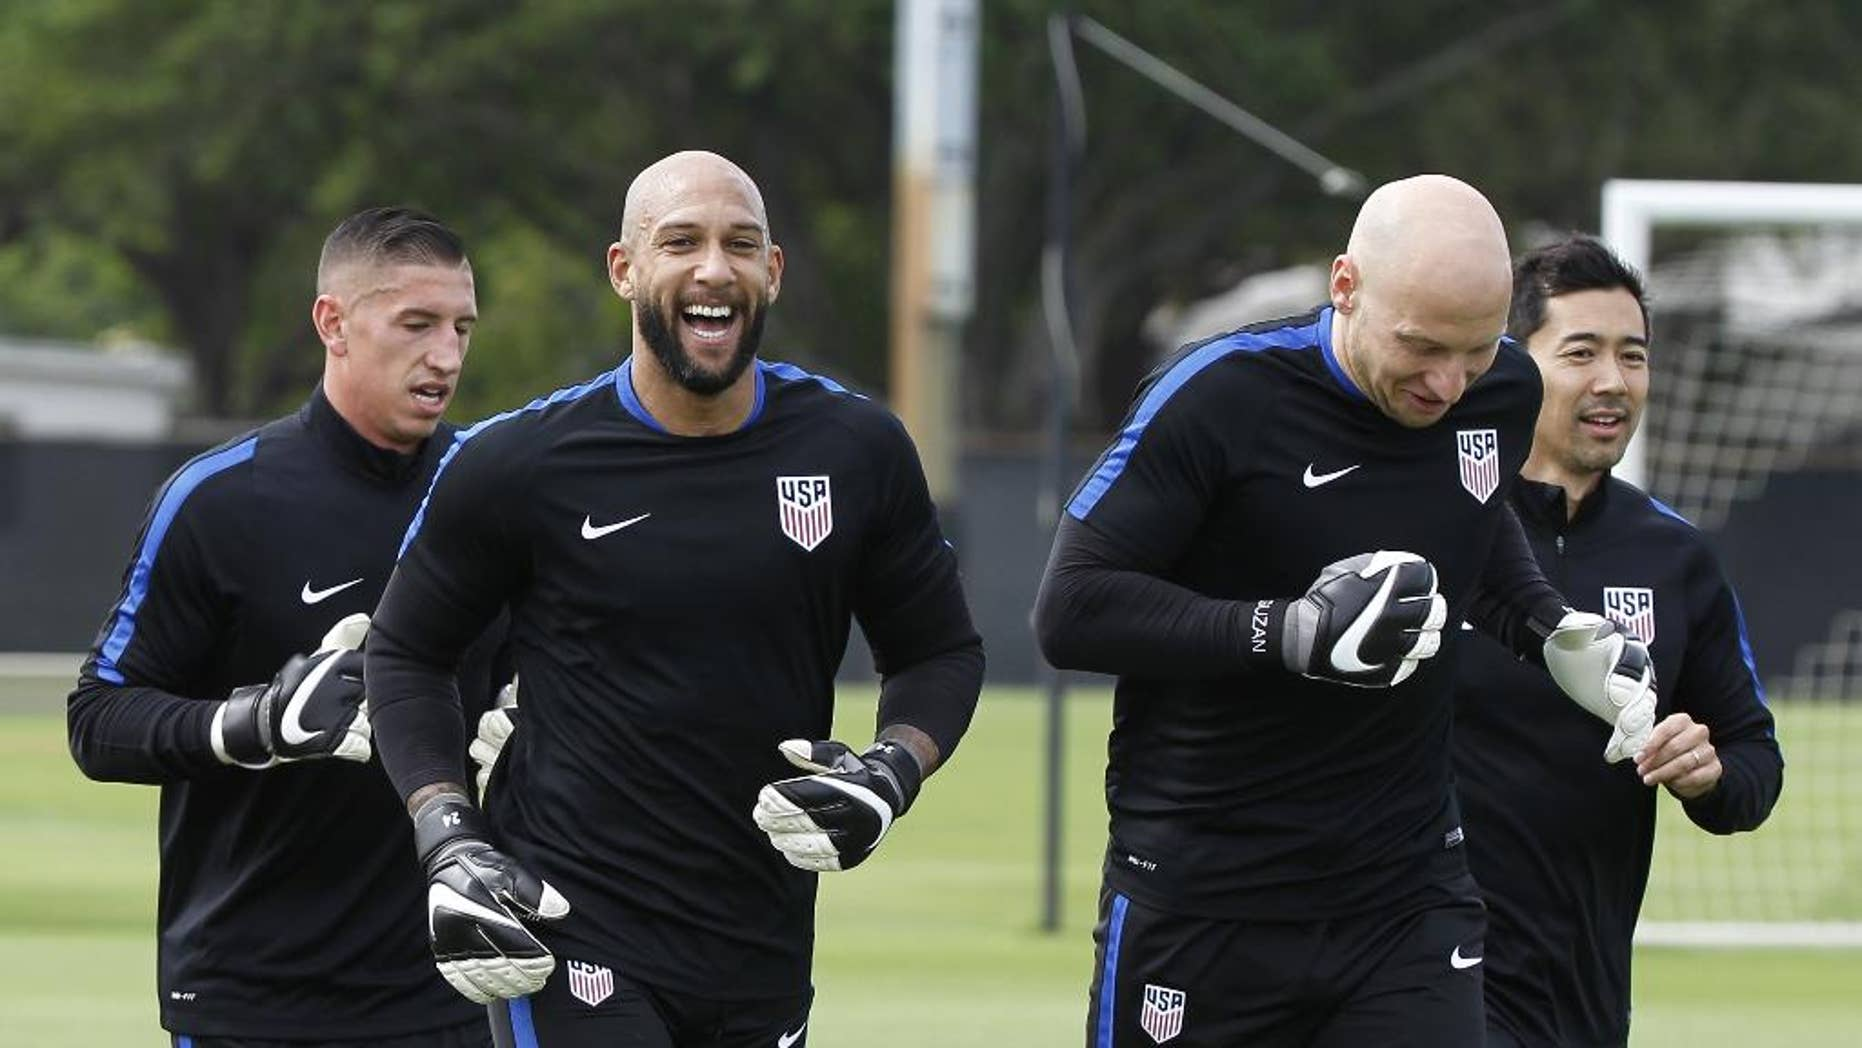 FILE - In this March 21, 2016, file photo, U.S. soccer goalkeepers Tim Howard, left, and Brad Guzan, warm up during a training sesson at Barry University in Miami Shores, Fla. Guzan is set to start ahead of veteran Tim Howard for the U.S. national team in the upcoming Copa America tournament, coach Jurgen Klinsmann announced Saturday, May 21, 2016. (AP Photo/Marta Lavandier, File)